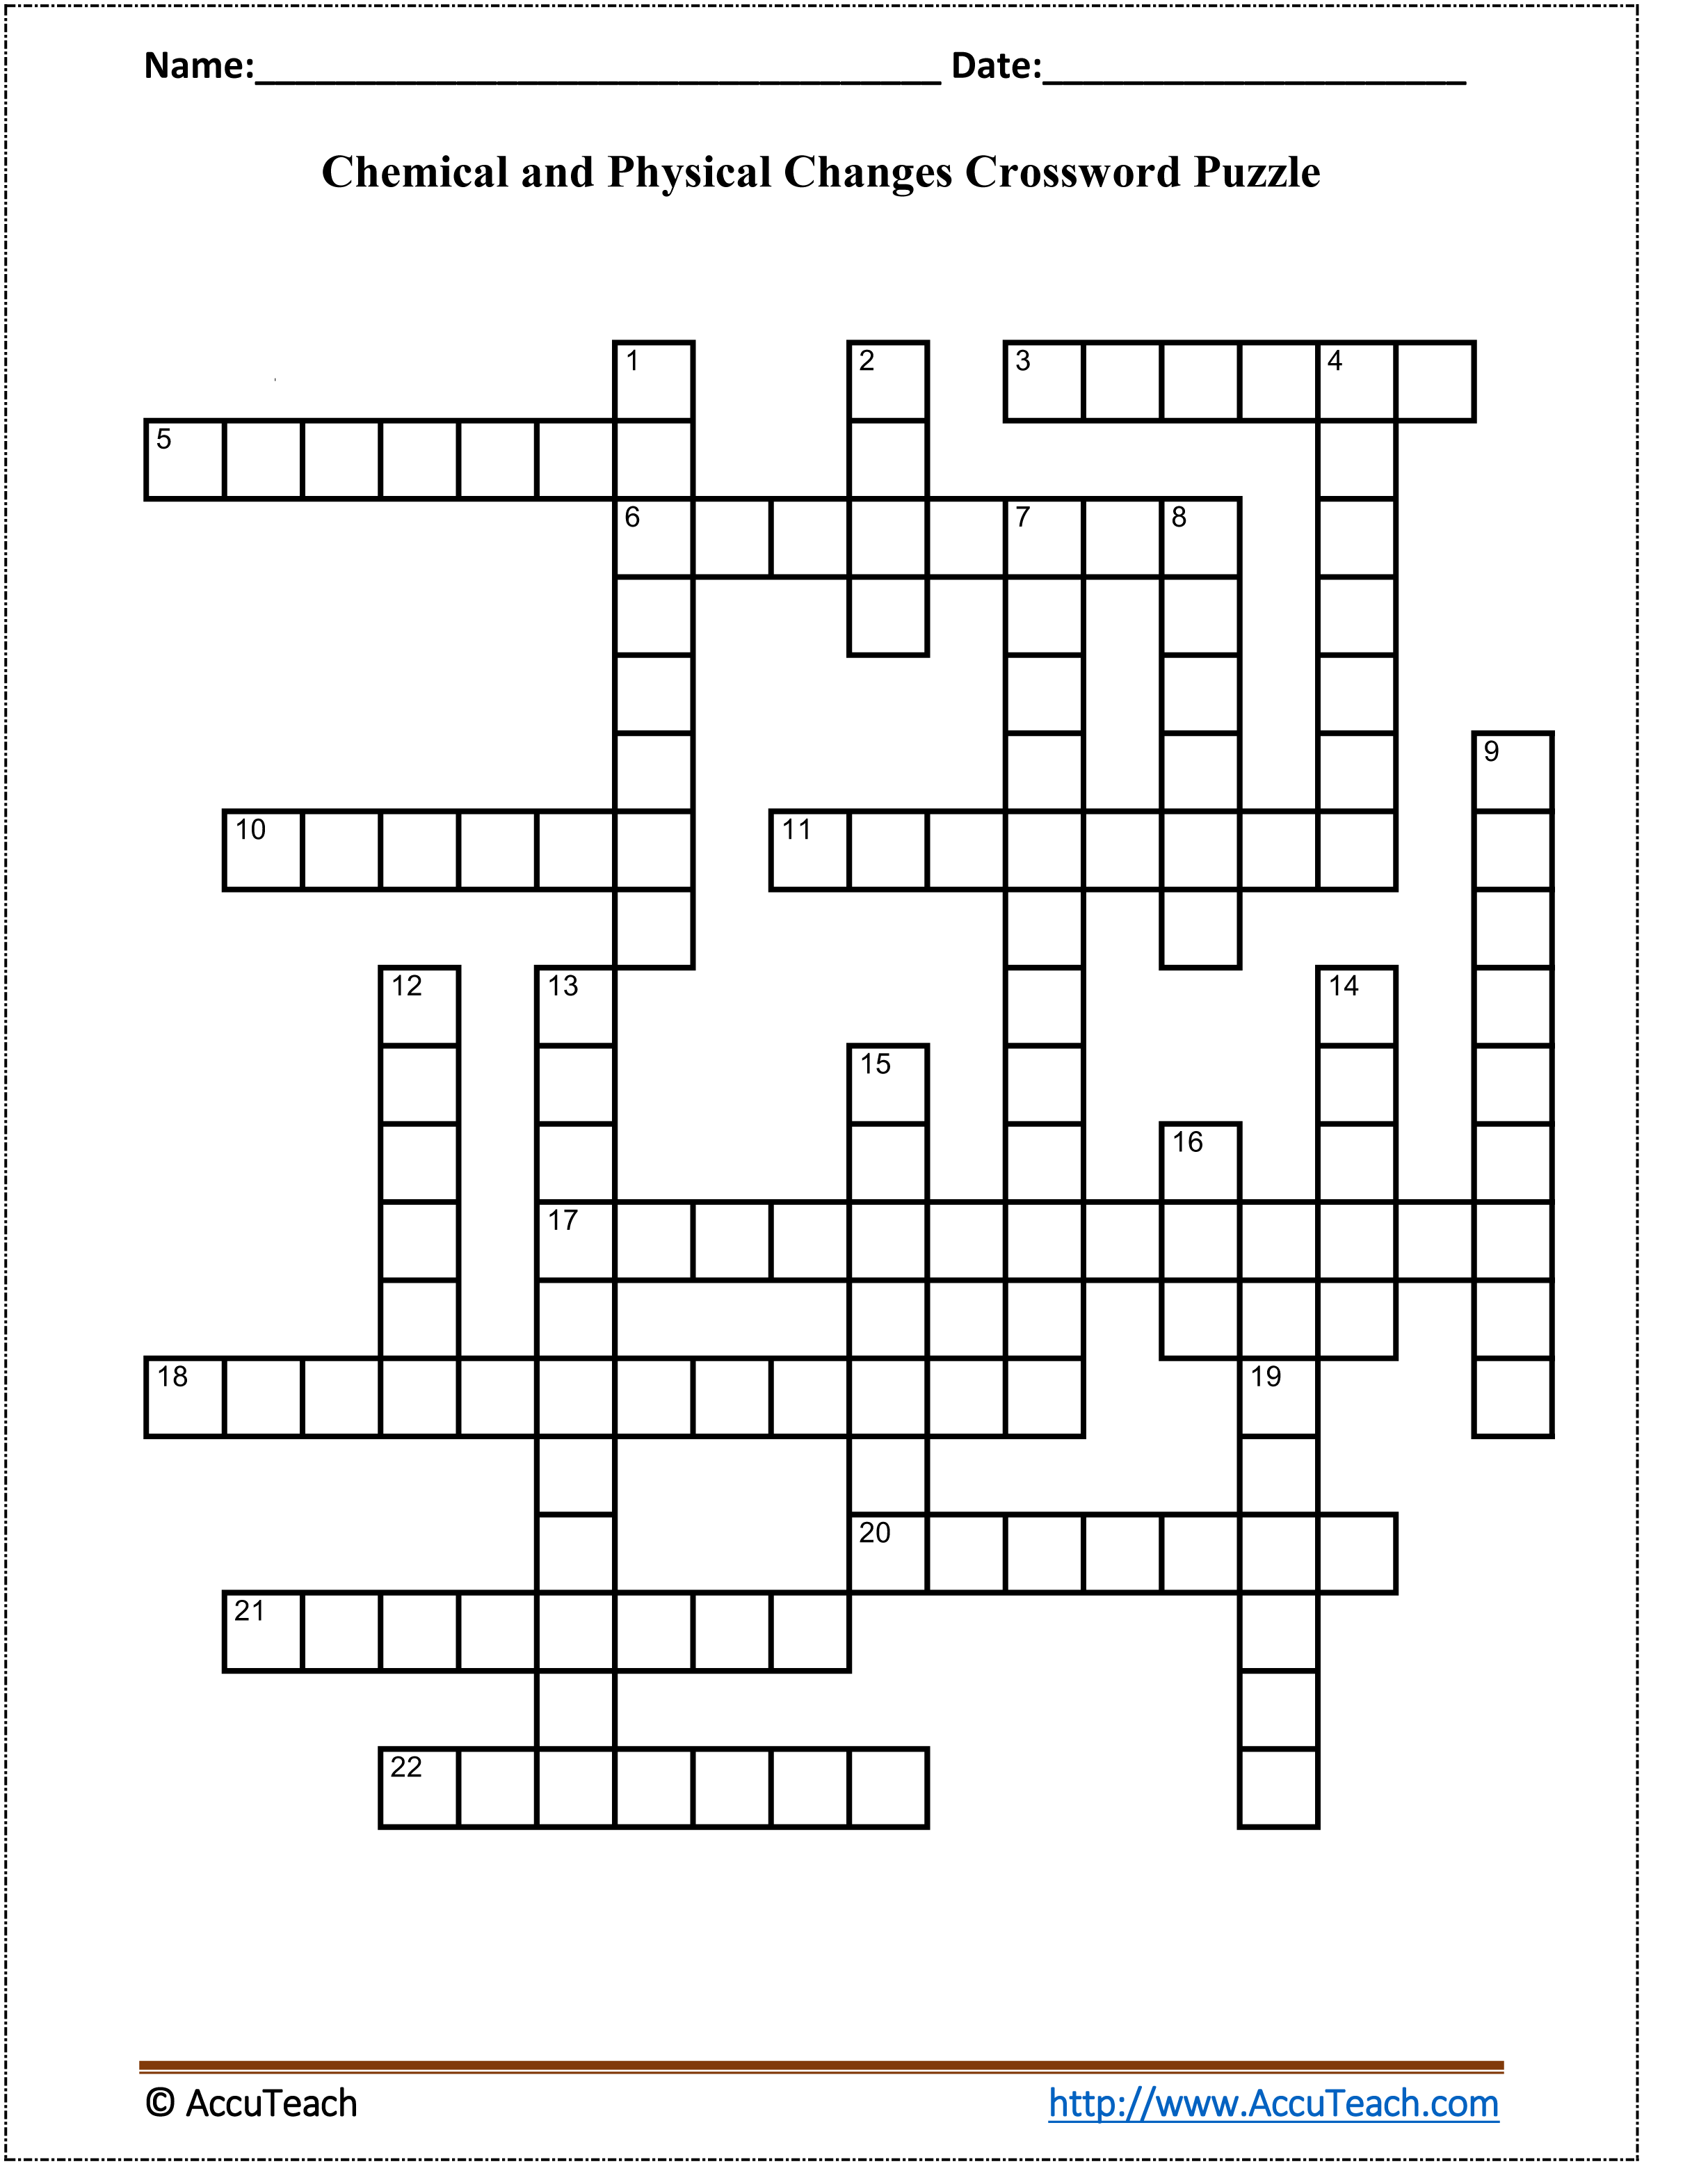 Crossword puzzle template yelomdiffusion unique free crossword puzzle template gift entry level resume maxwellsz